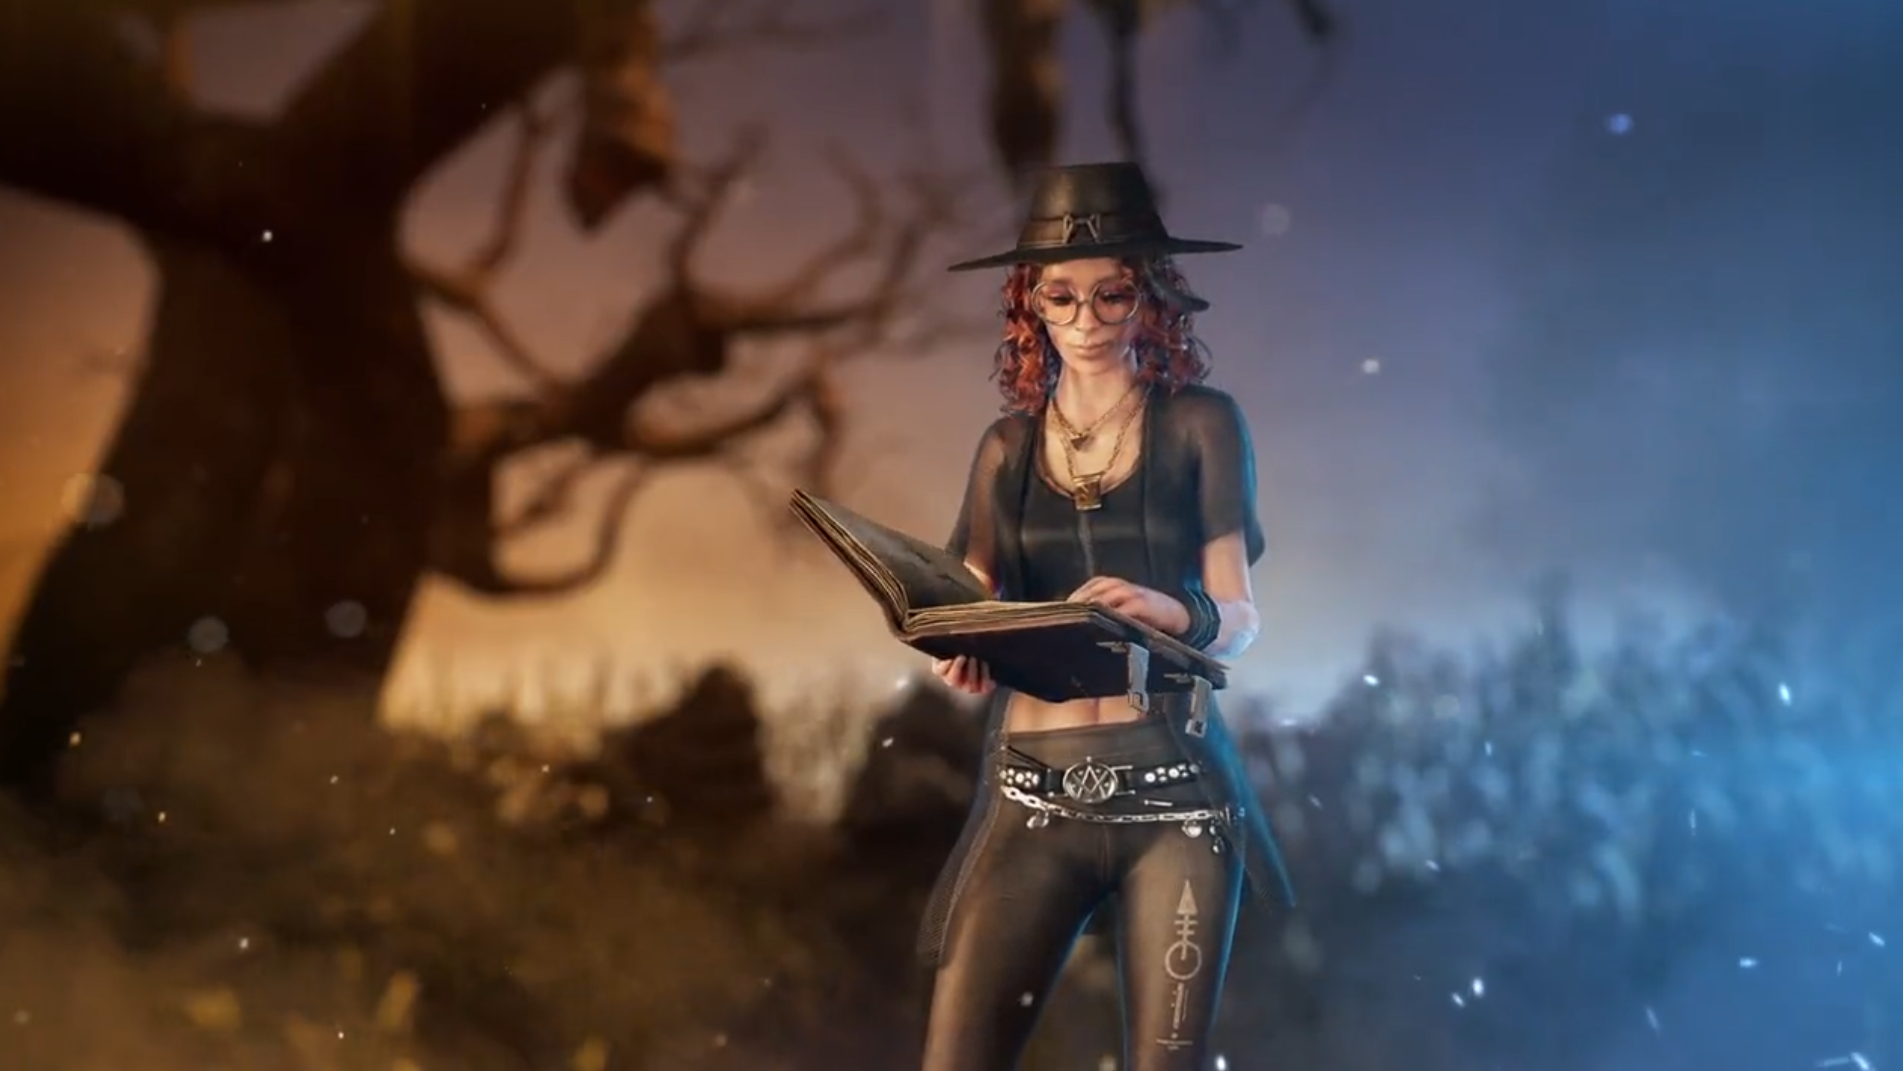 Dead by Daylight - Mikaela Reid, a young woman with curly red hair and witchy garb, looks through a book of spells